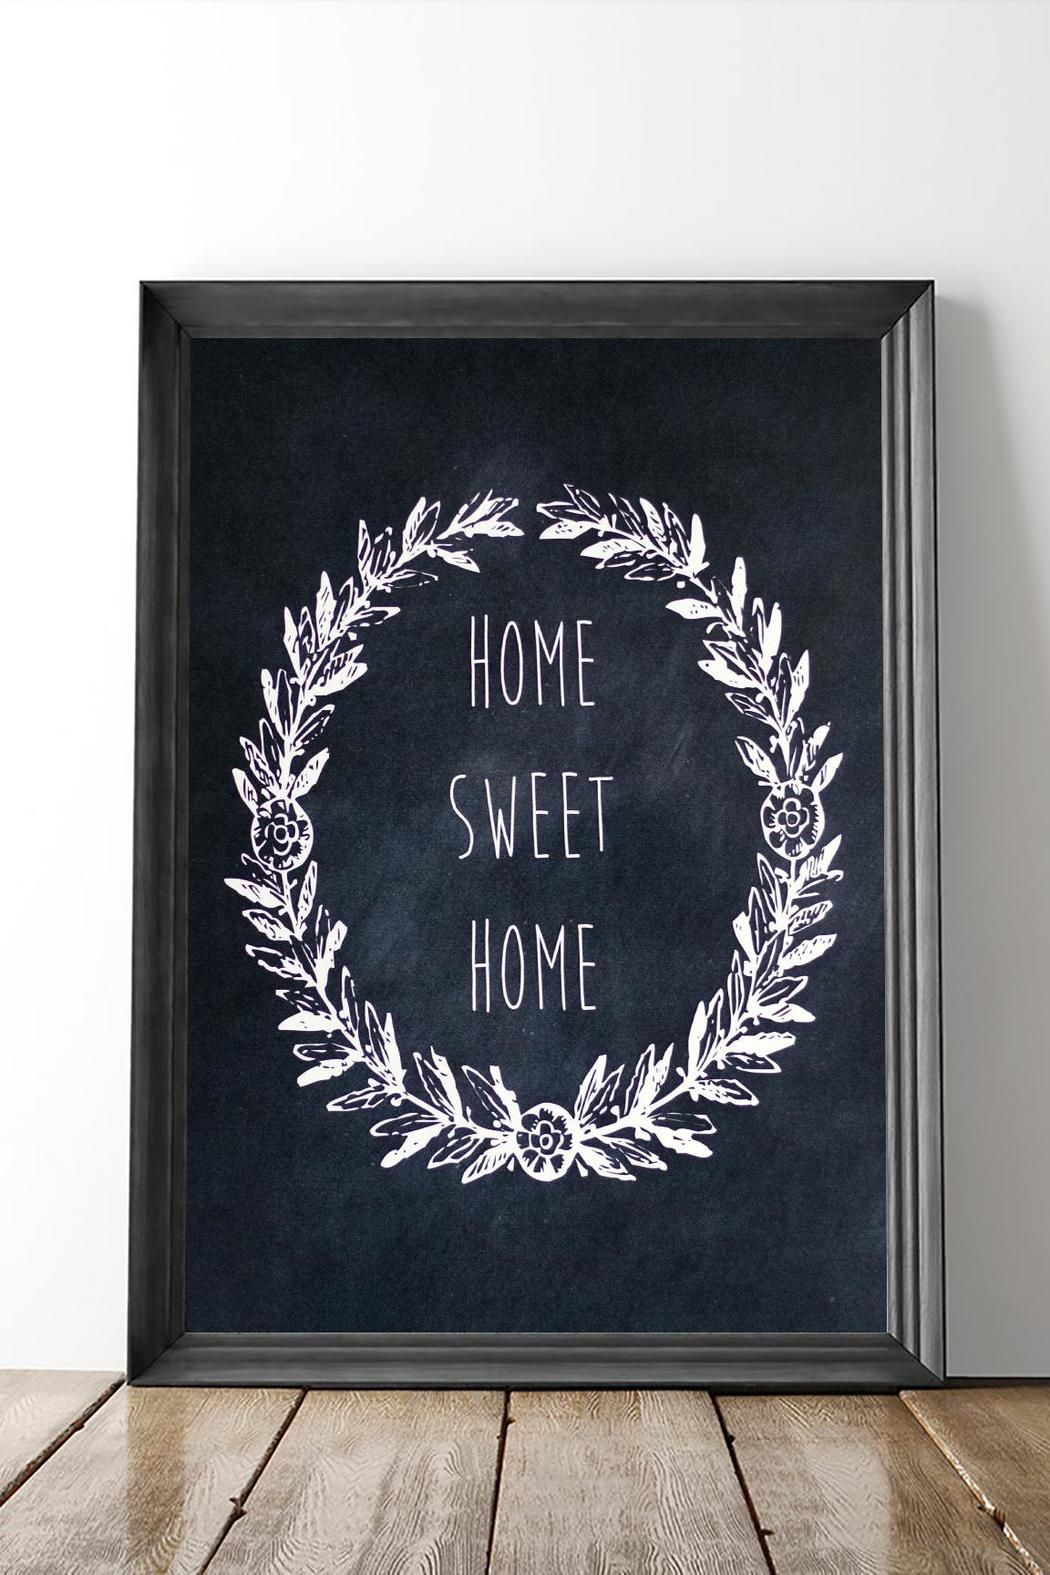 """Make your home your own with this beautiful Home-Sweet-Home Print! Print dimensions are 8x10. Print is unframed. Made by KBelt Designs. """"Home-Sweet-Home"""" Print by Dime & Regal. Home & Gifts - Home Decor - Wall Art Michigan"""